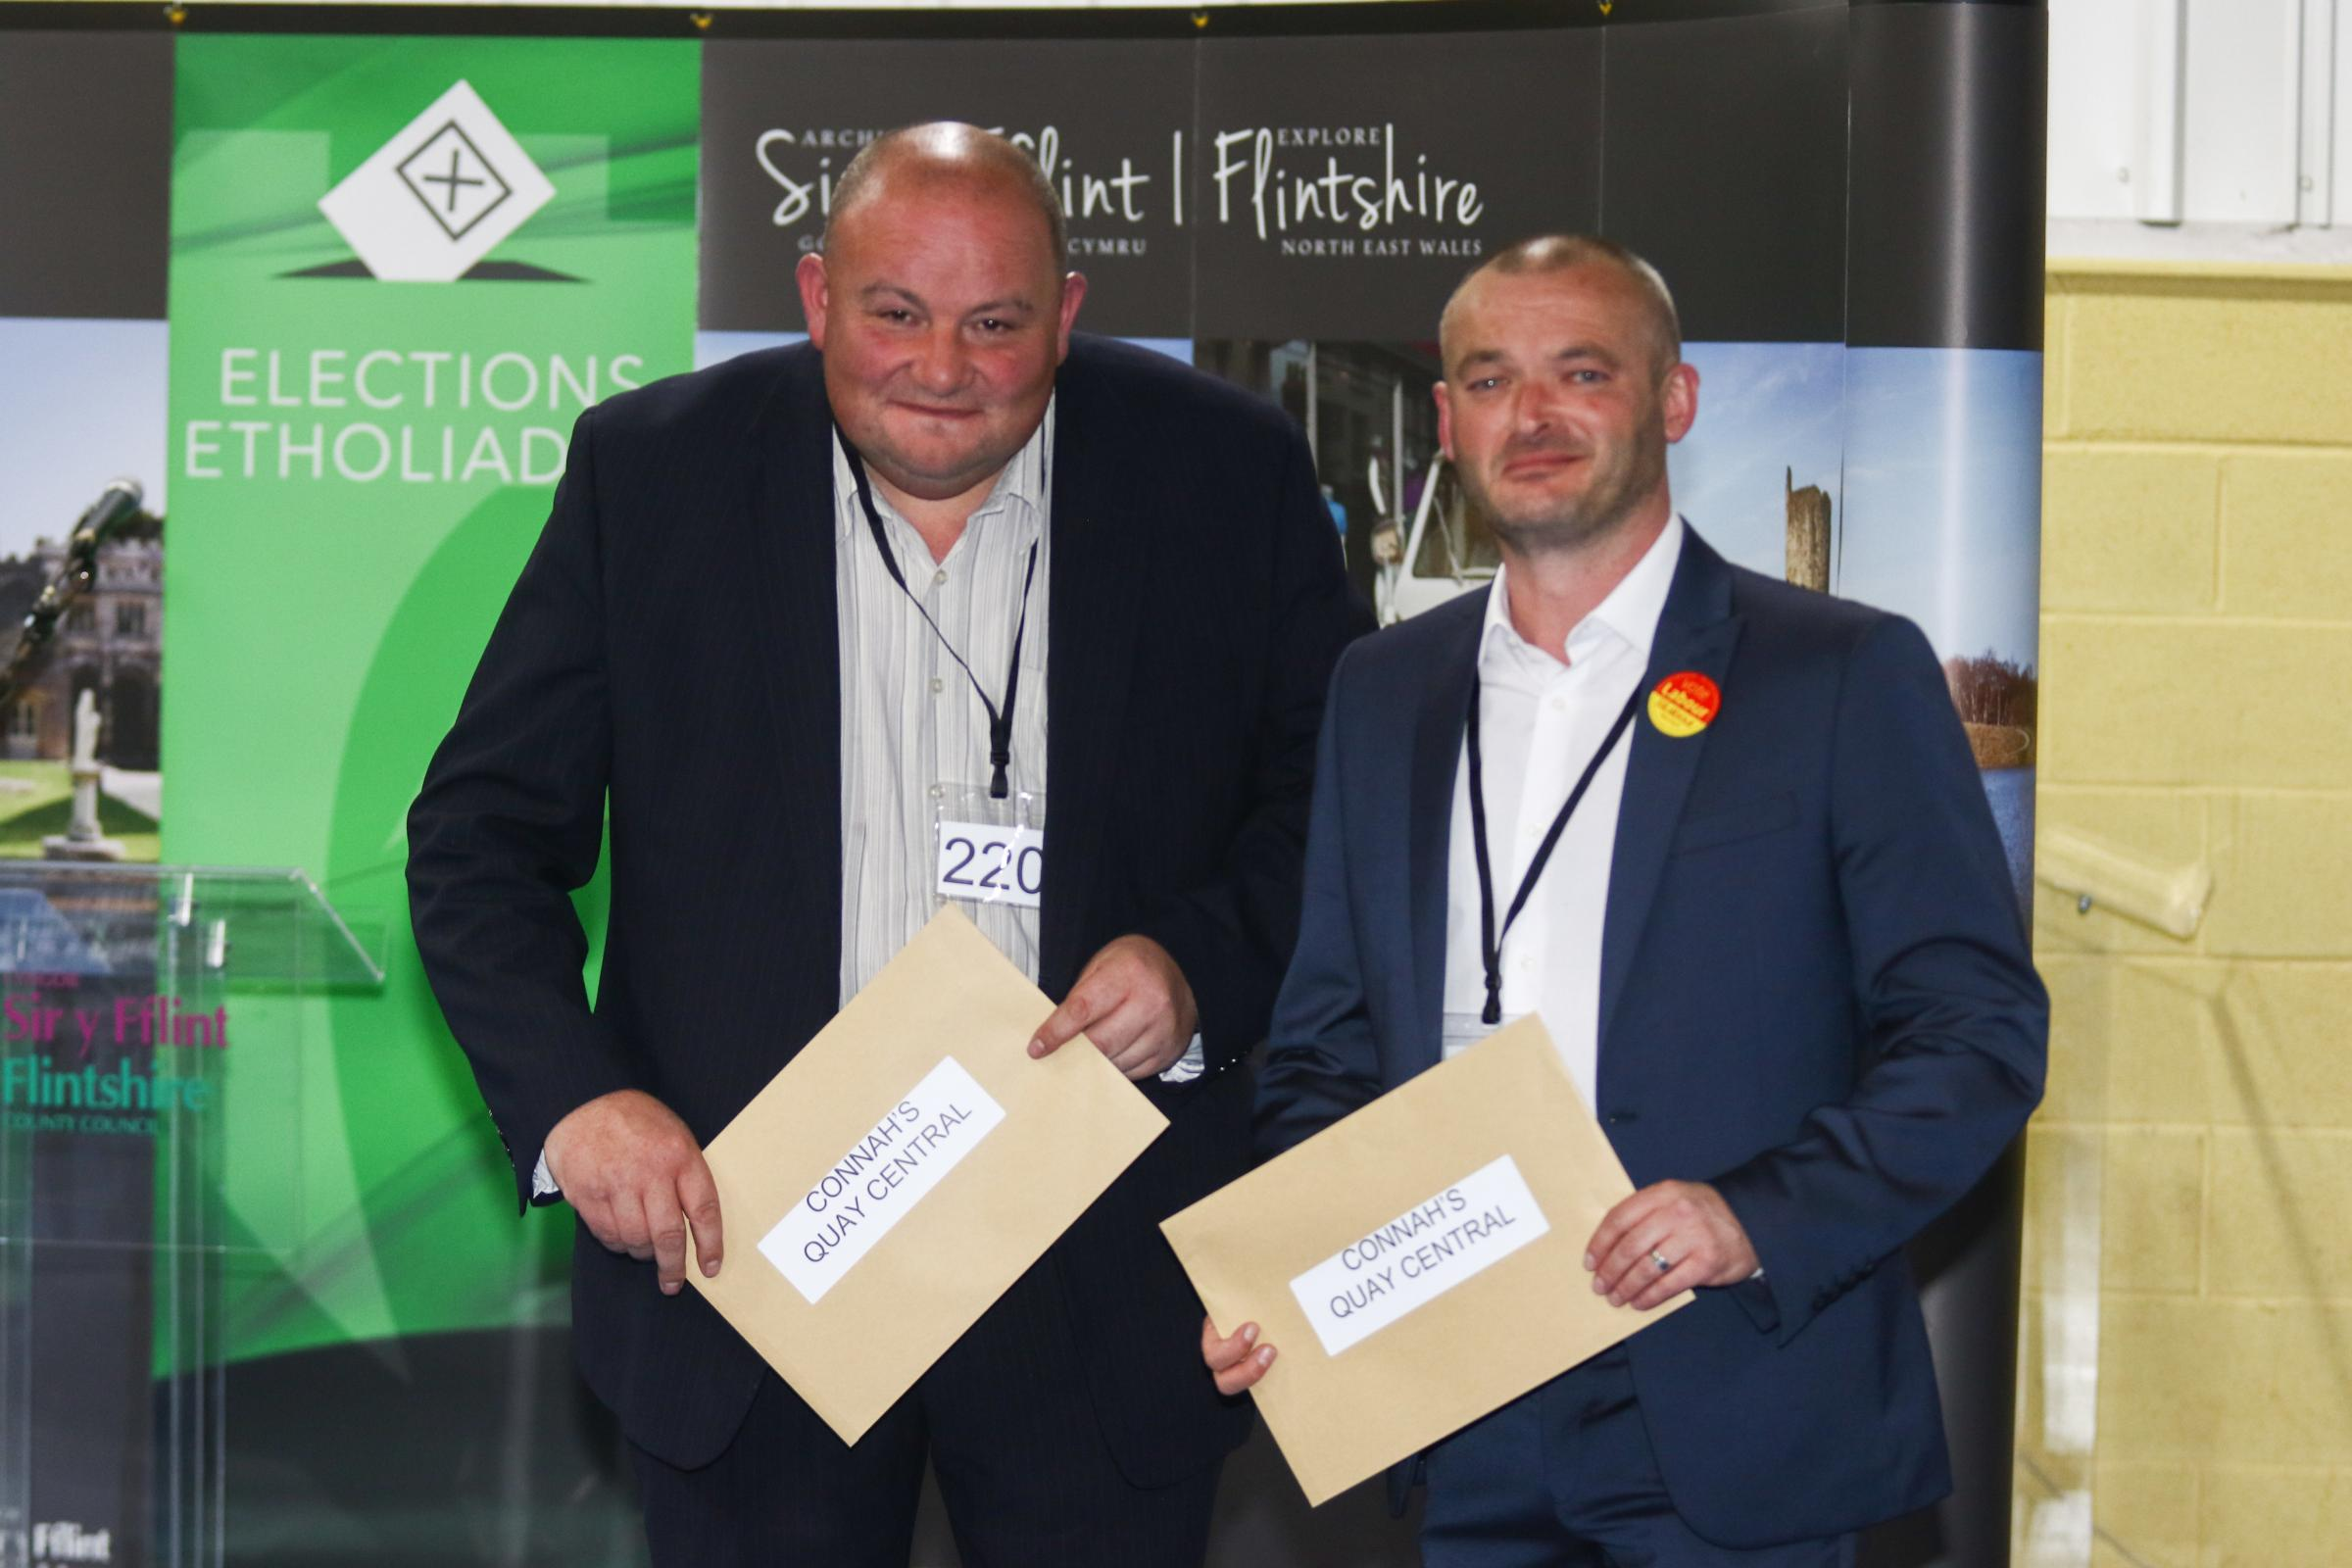 Bernie Attridge, left, has been stripped of his roles by Aaron Shotton, right, leader of Flintshire County Council